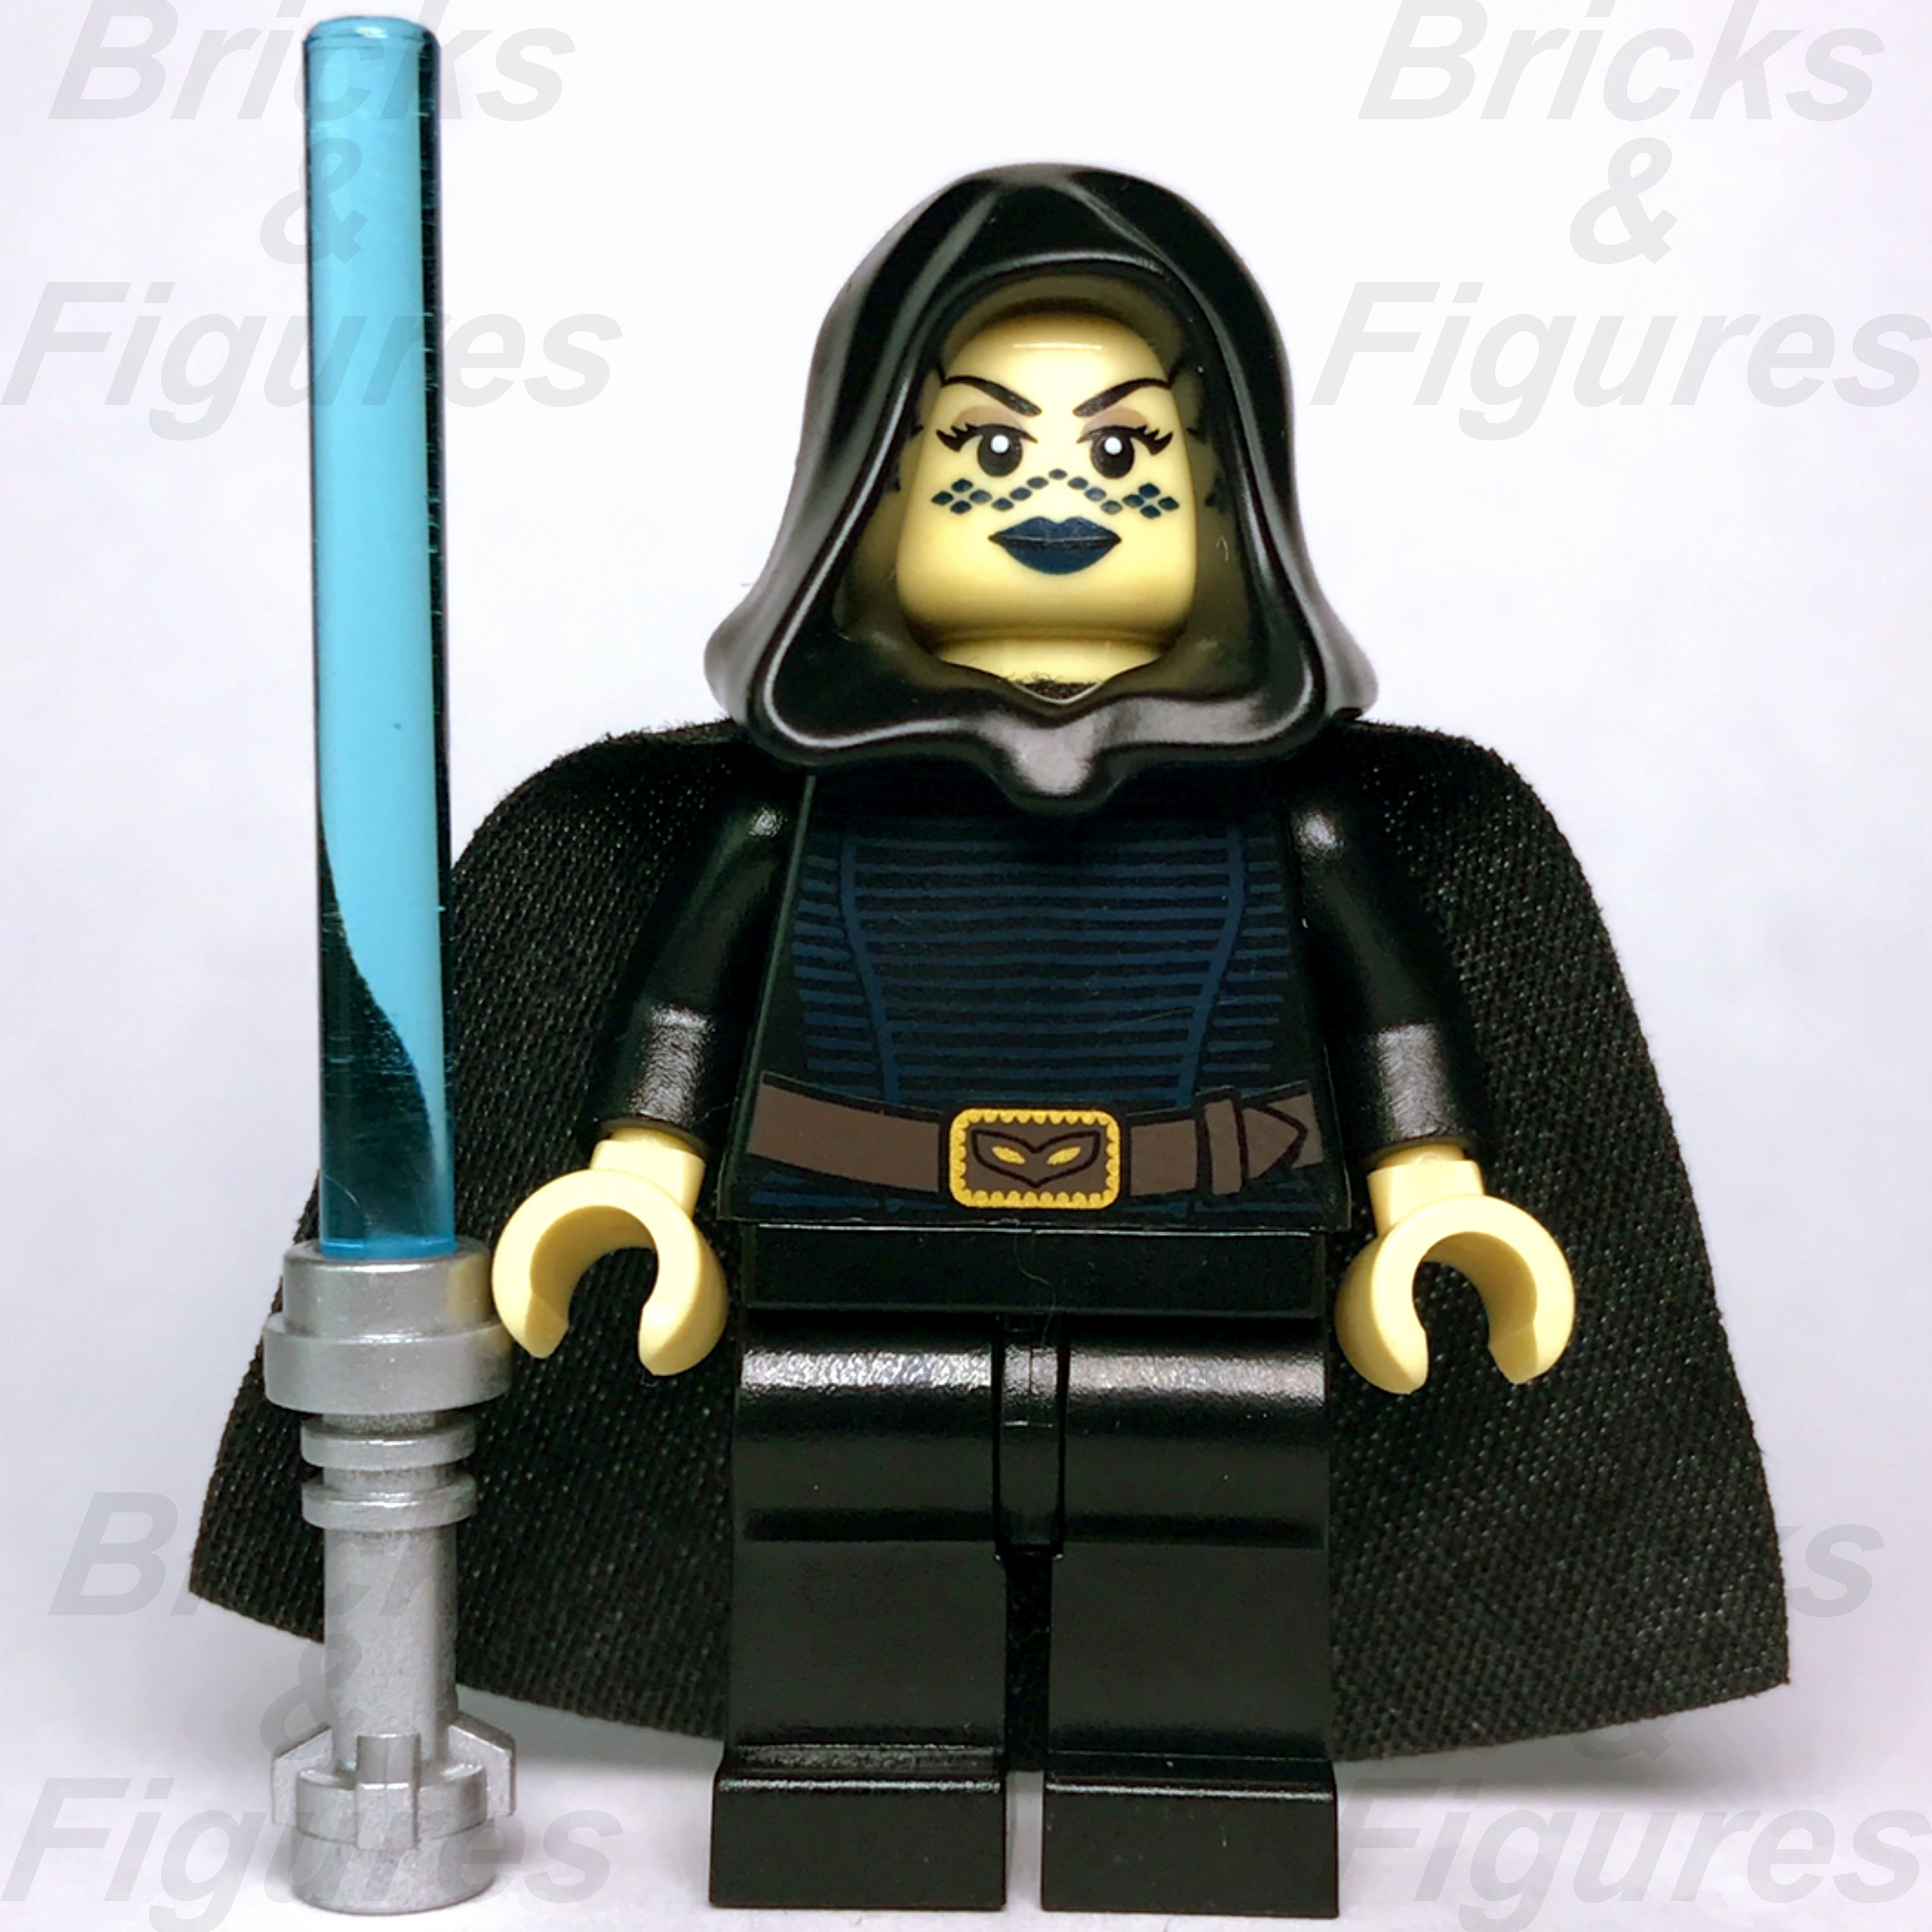 Lego Star Wars Barriss Offee  Minifigure  From Set 8091 LEGO Minifiguren LEGO Bau- & Konstruktionsspielzeug